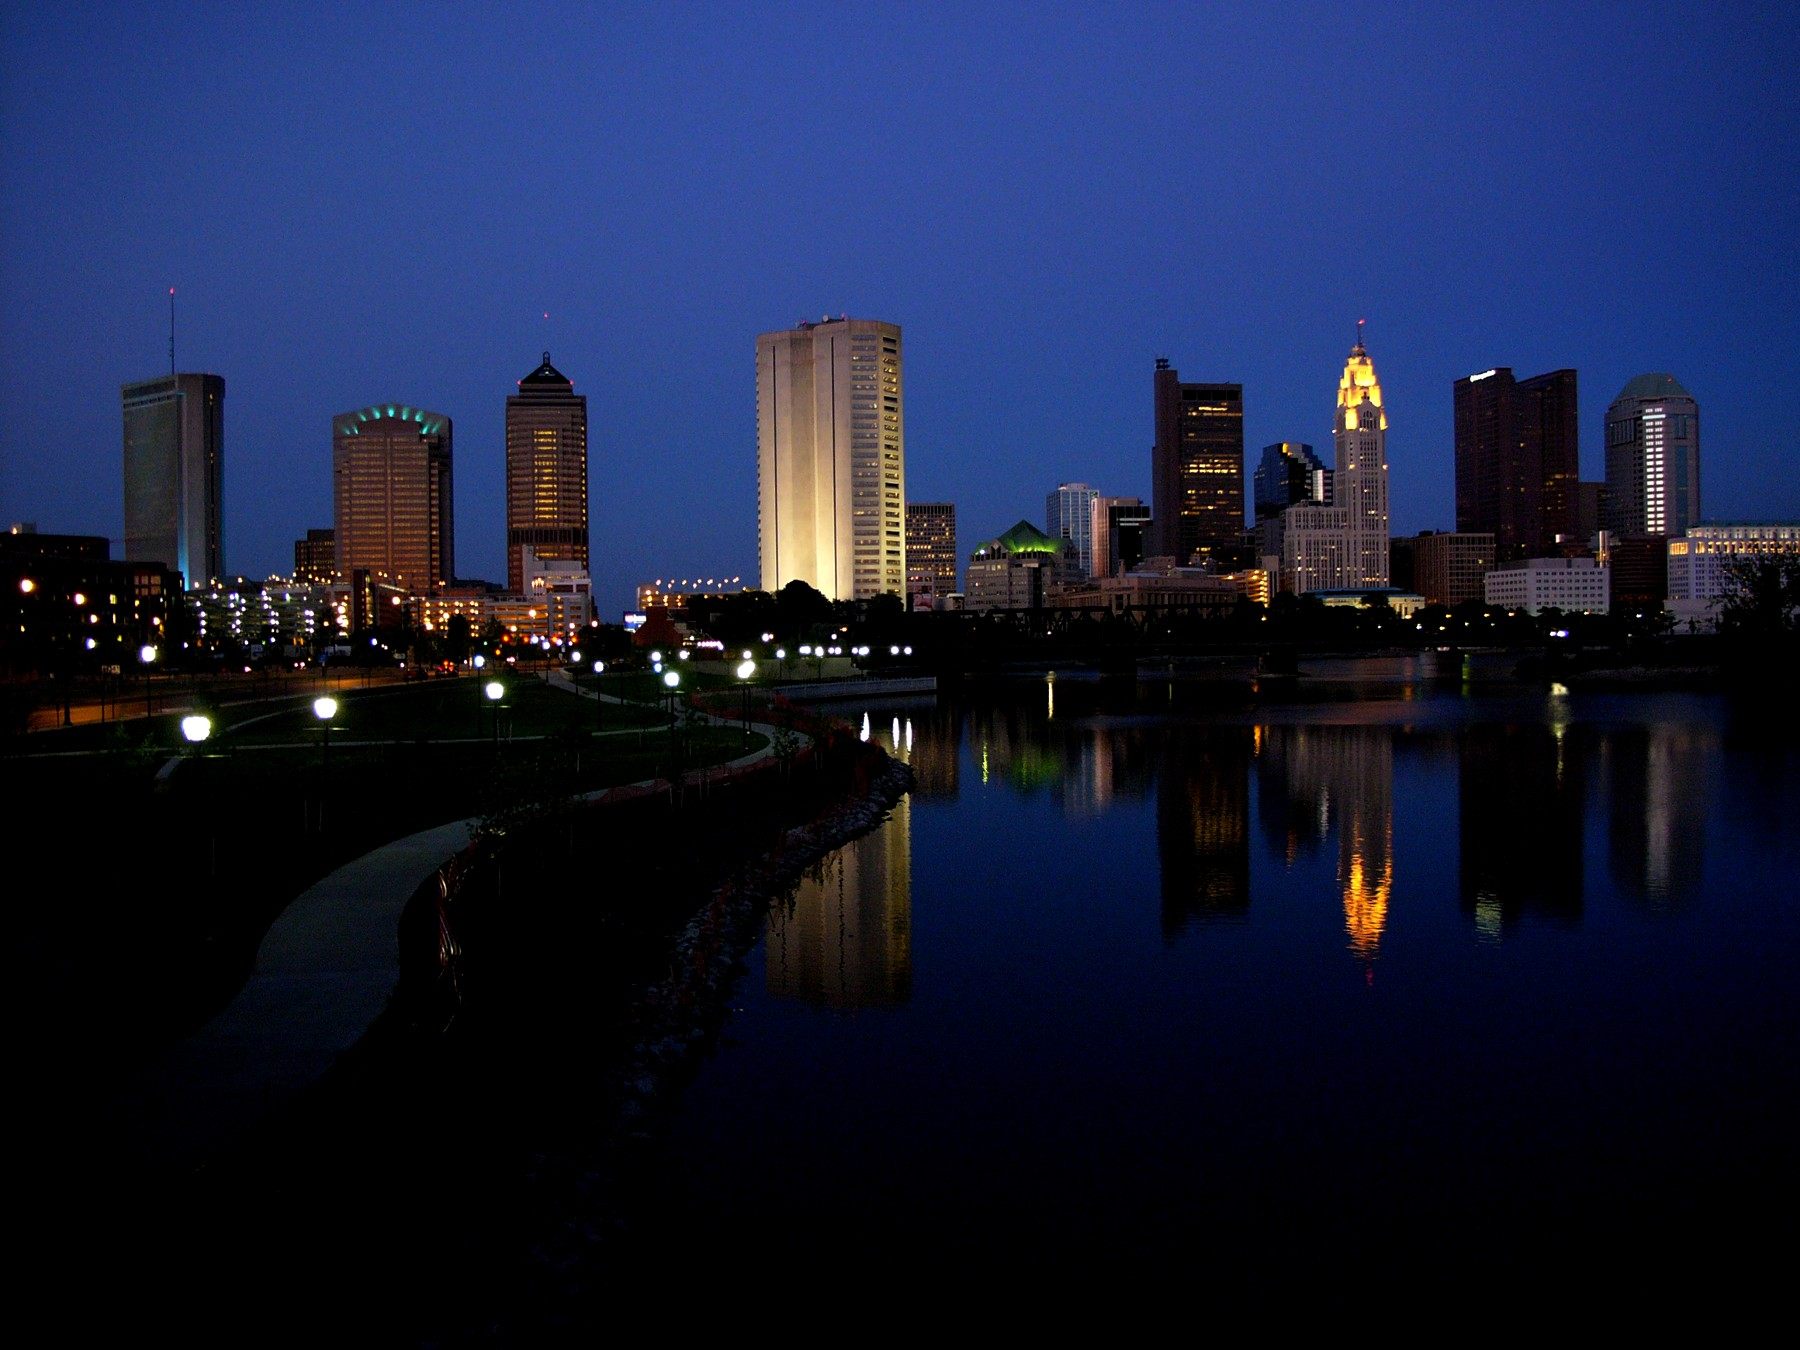 columbus ohio wallpaper - photo #12